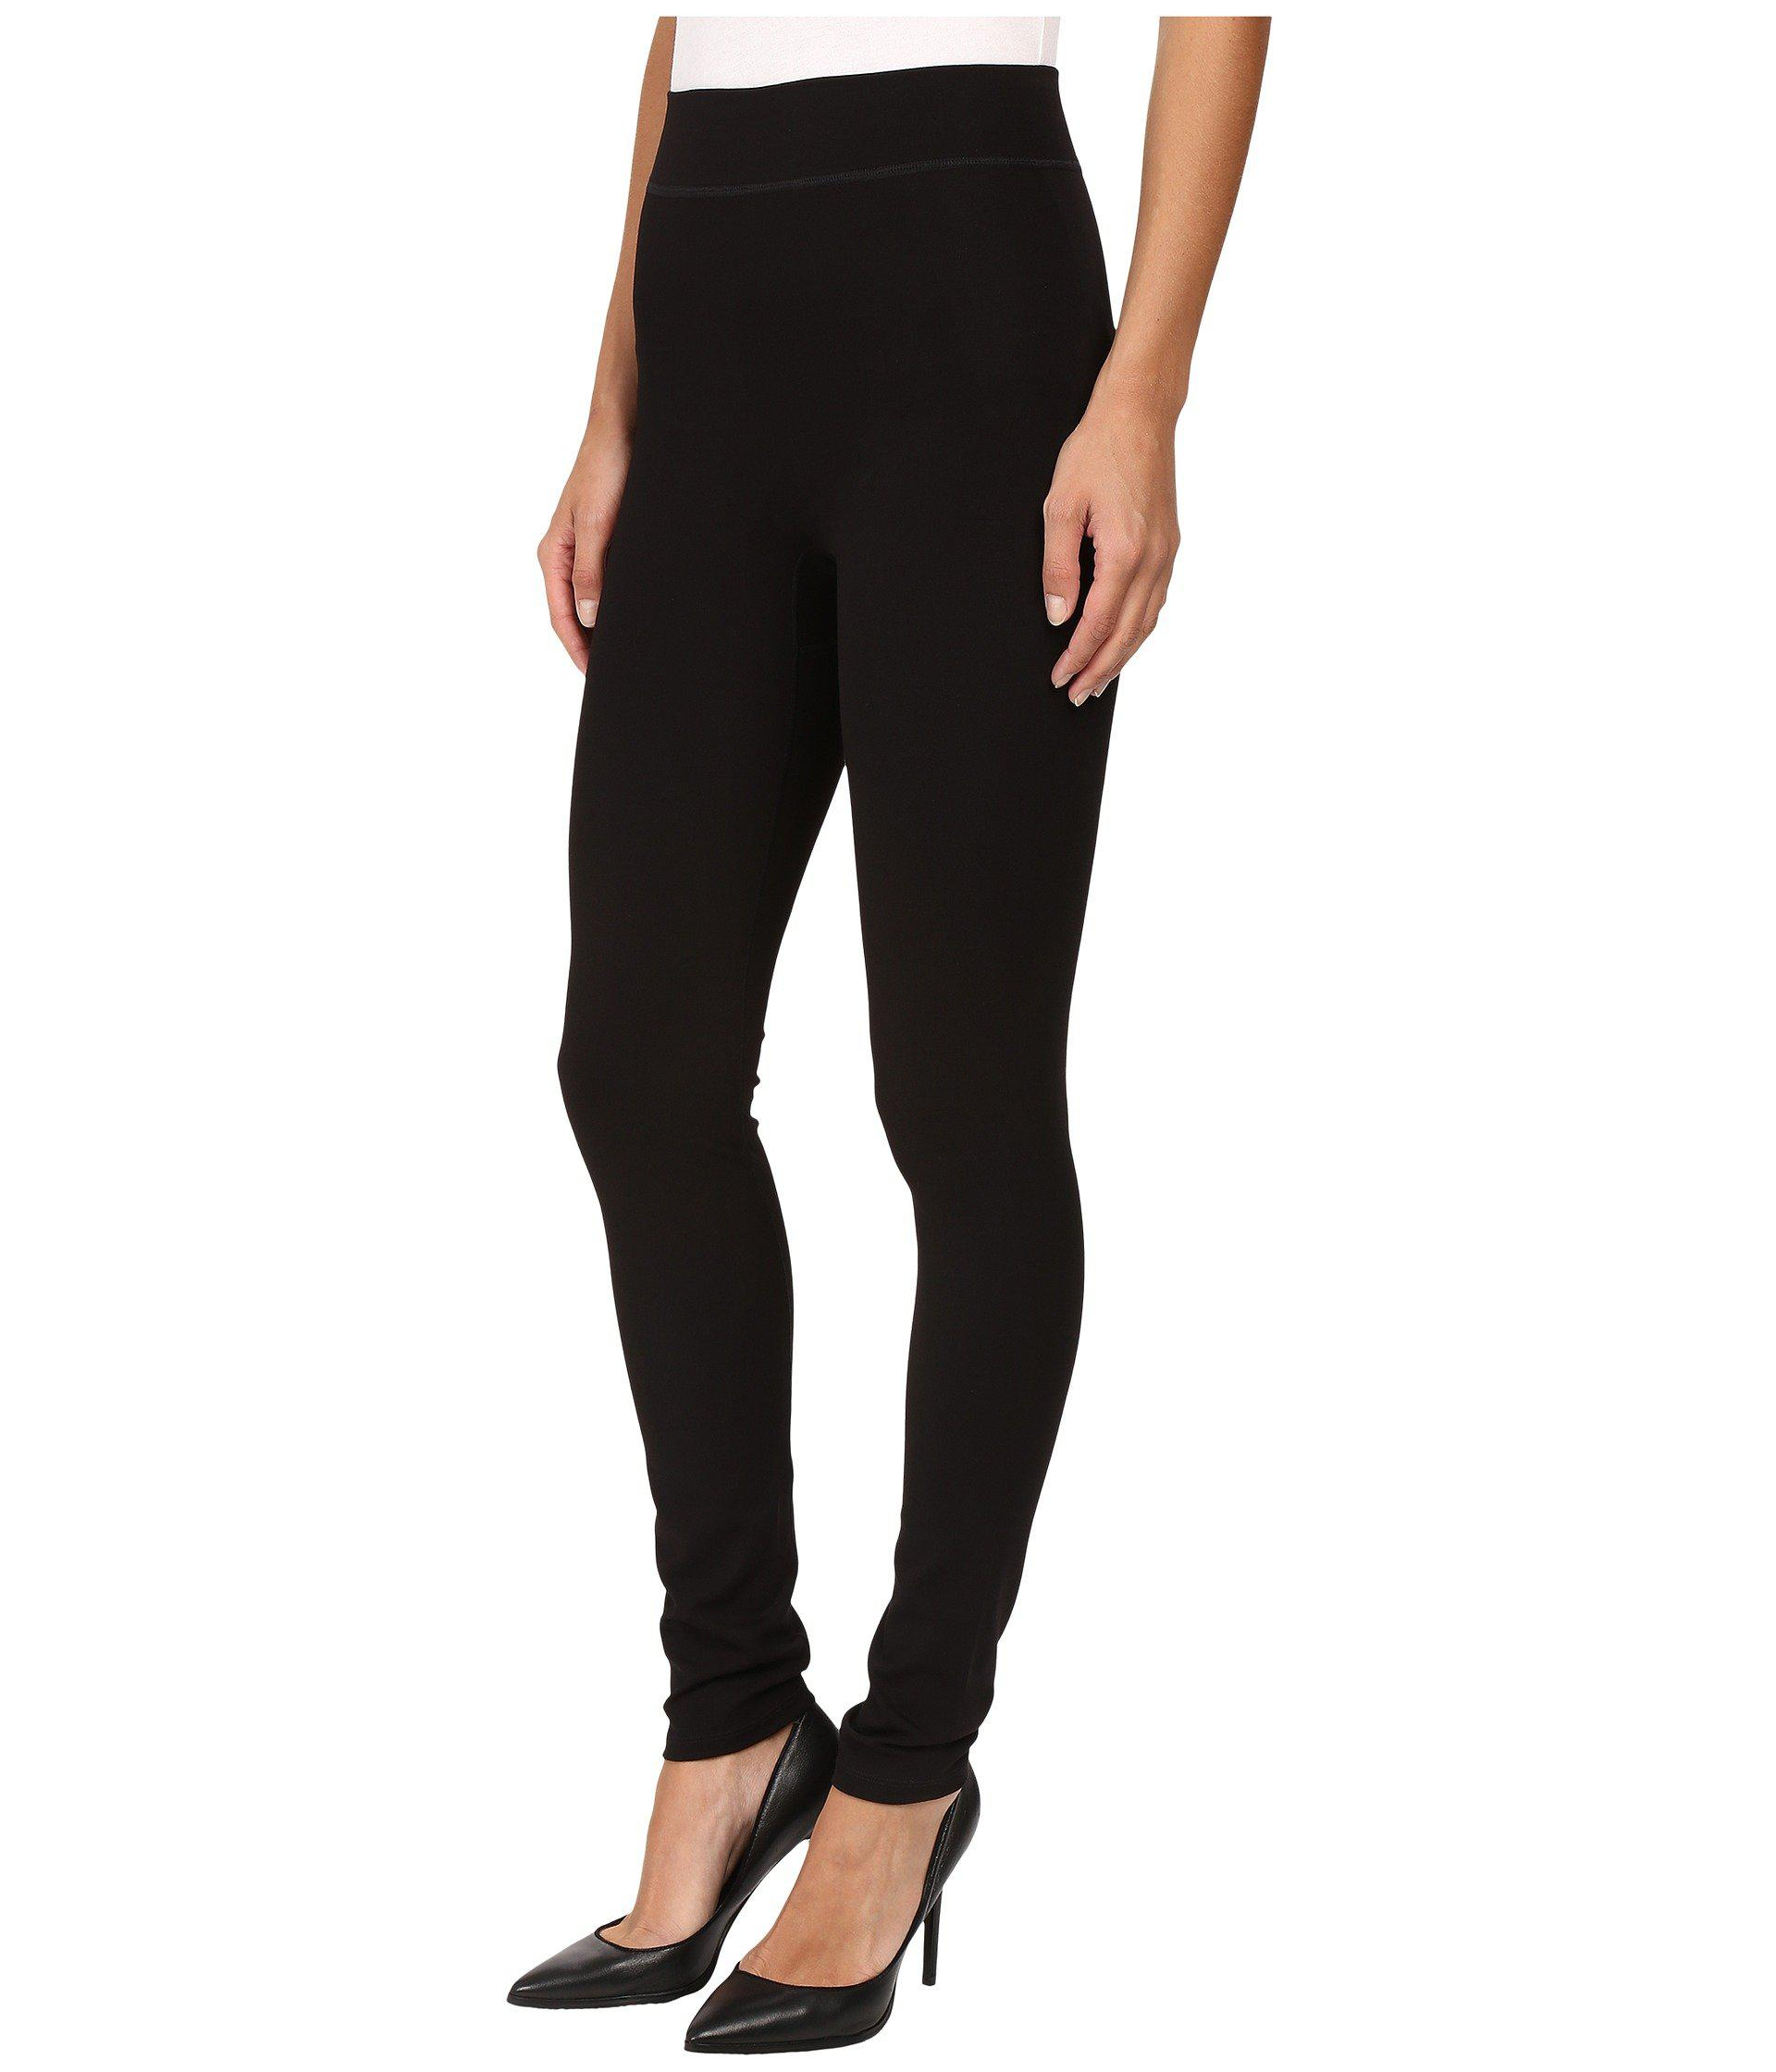 dc709f0b547d6 Lyst - Hue Double Knit Shaping Leggings (black) Women s Casual Pants in  Black - Save 29.16666666666667%